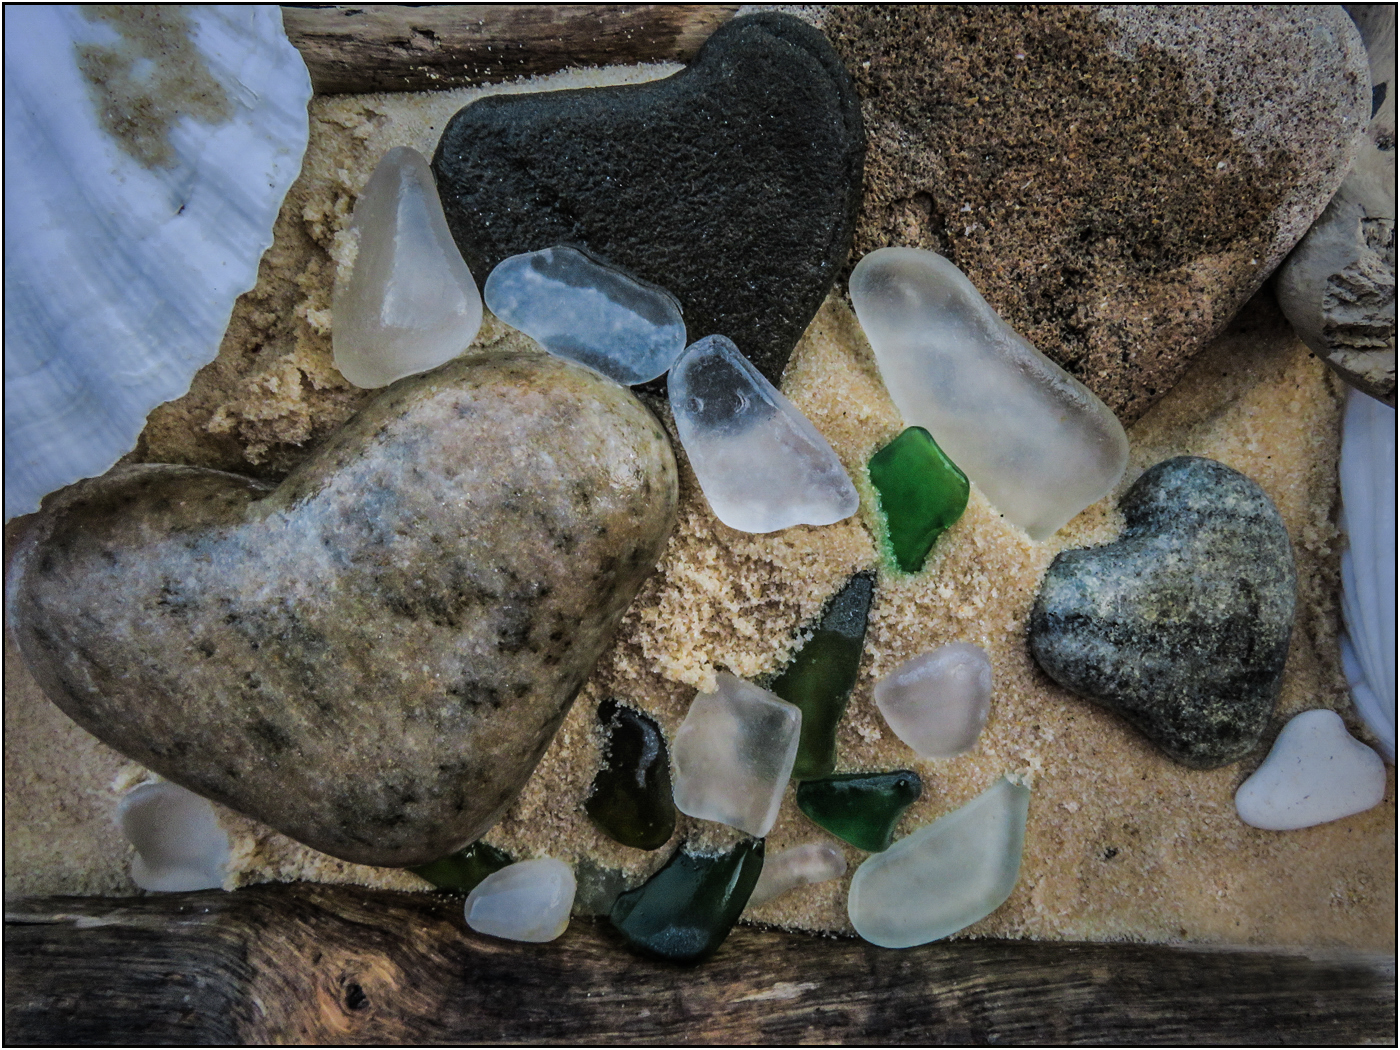 Beachcombing for Sea Glass